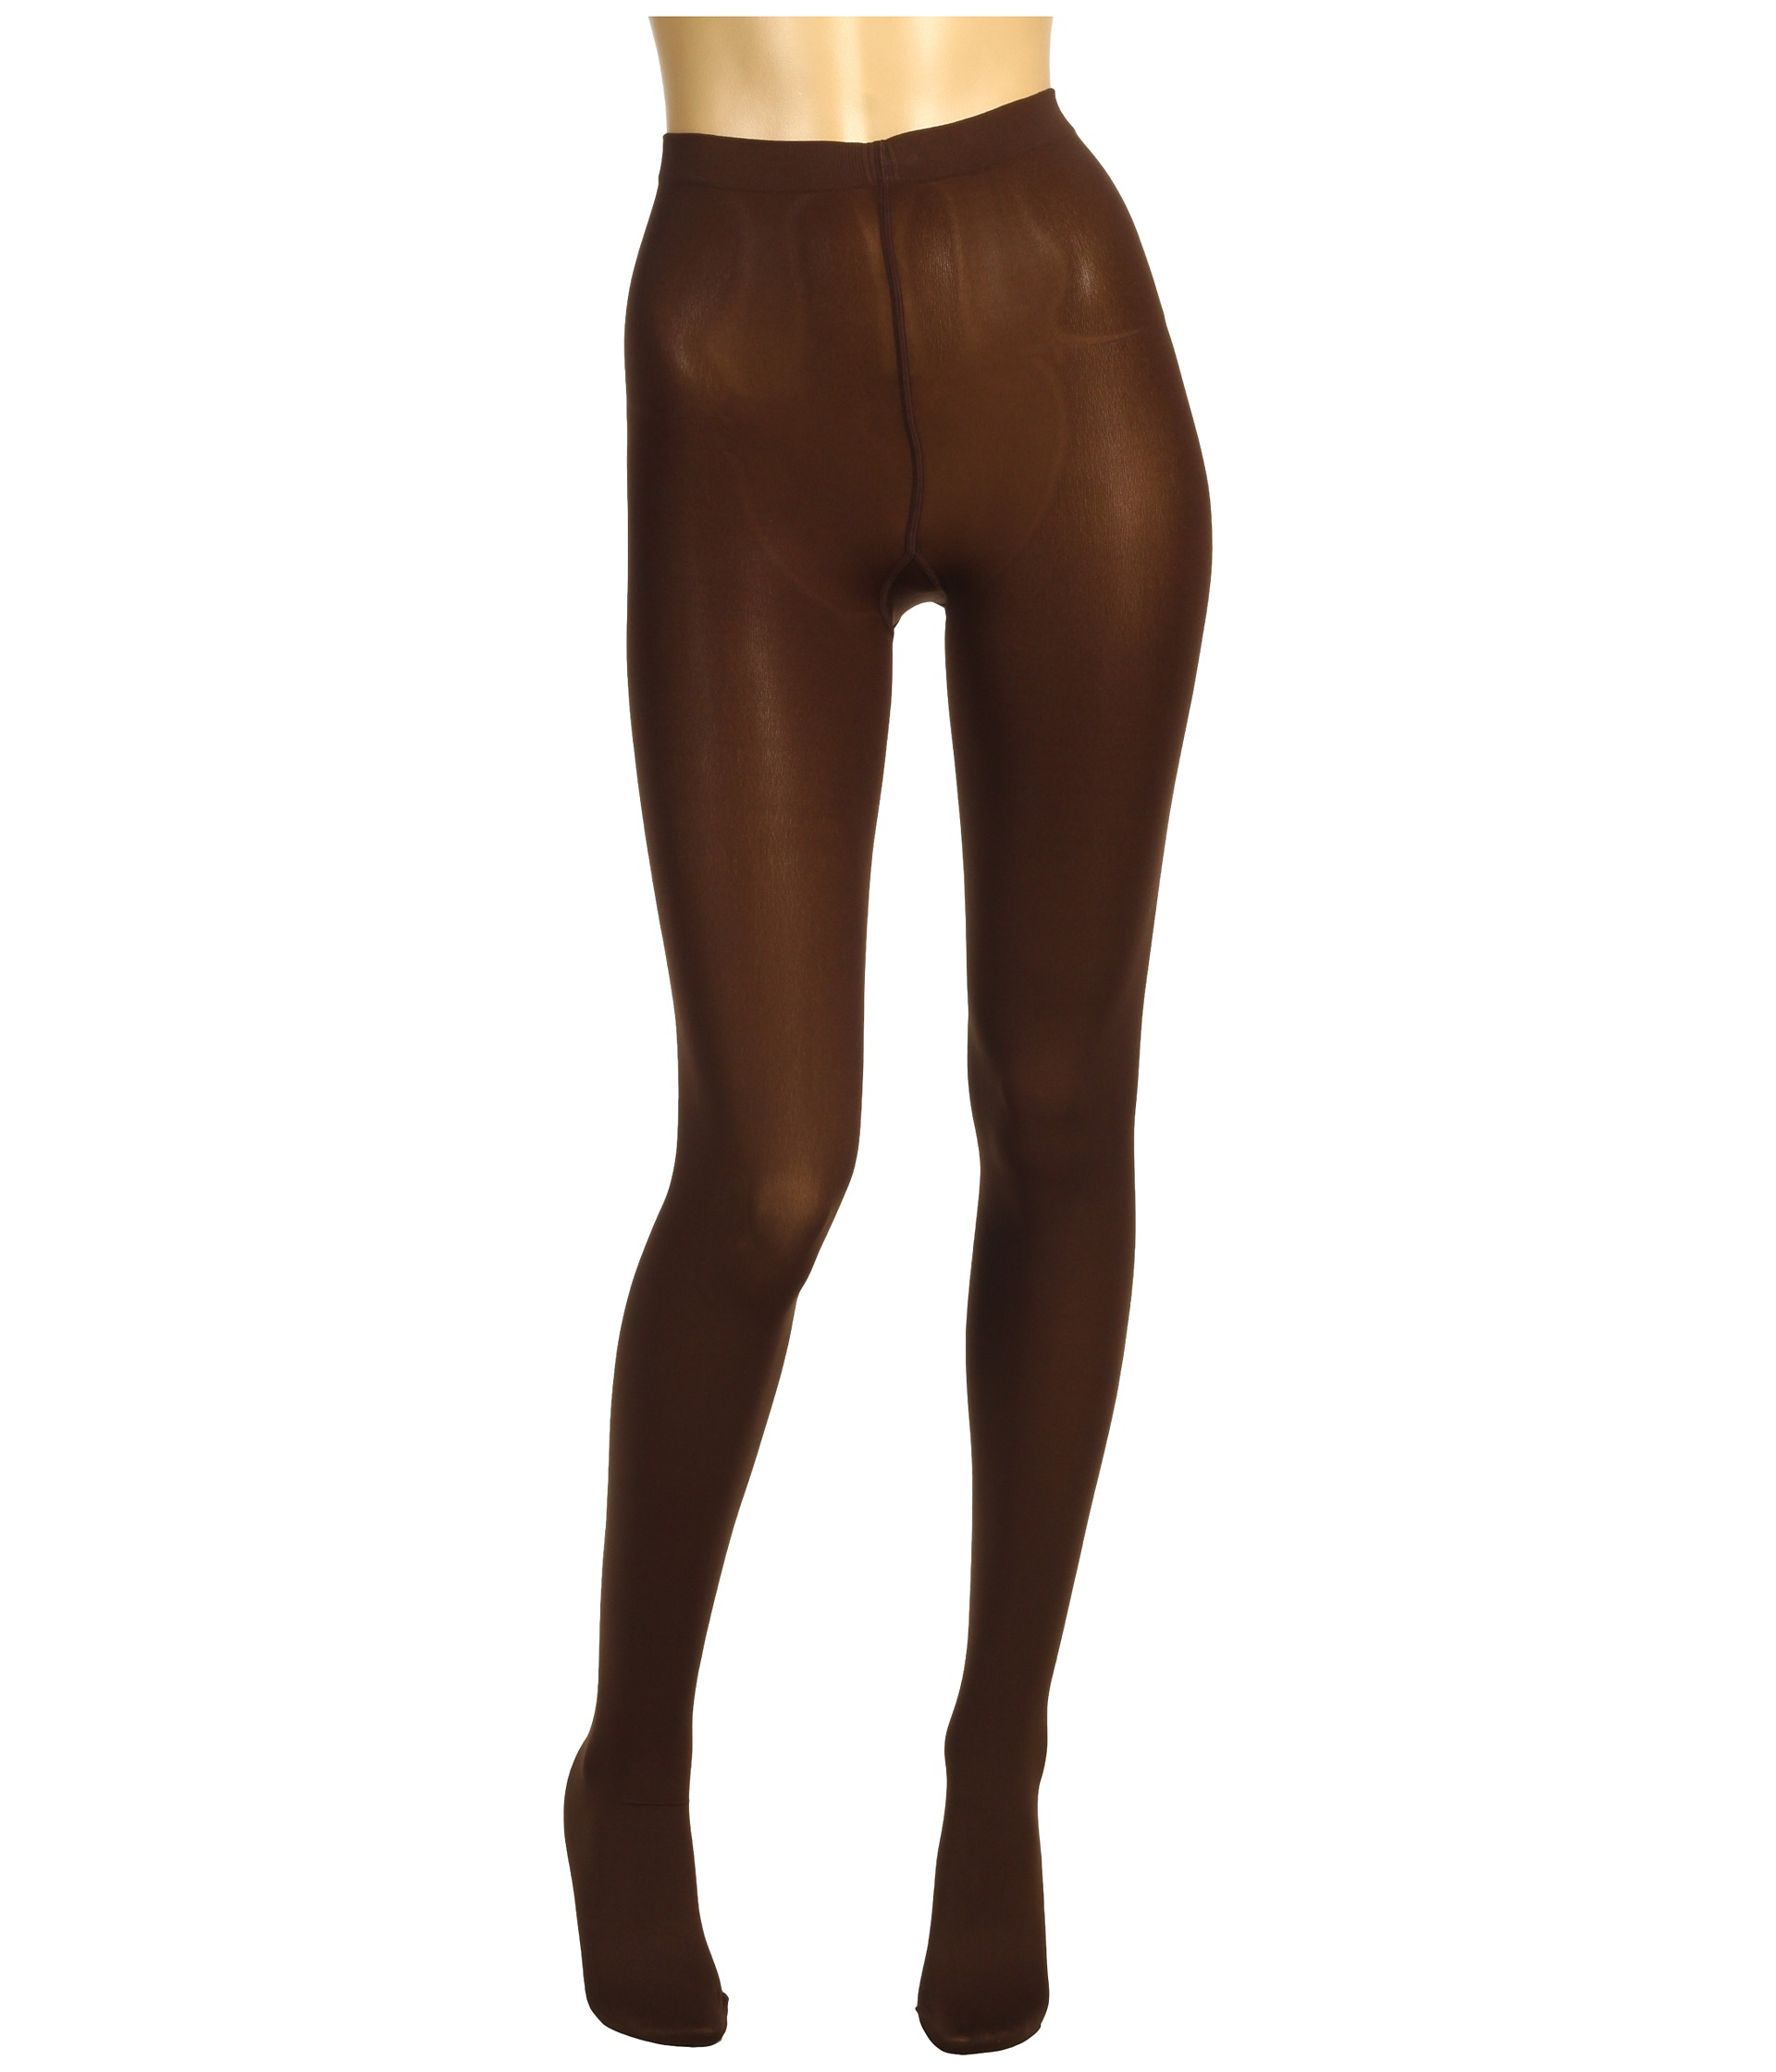 Rowdy Killjoy Velvet Pull-On Pants are perf for intimidating the fxck outta the company, babe. These supa hott high waisted pants feature a plush mocha brown velvet construction, curve huggin' fit, and sleek pull-on style.